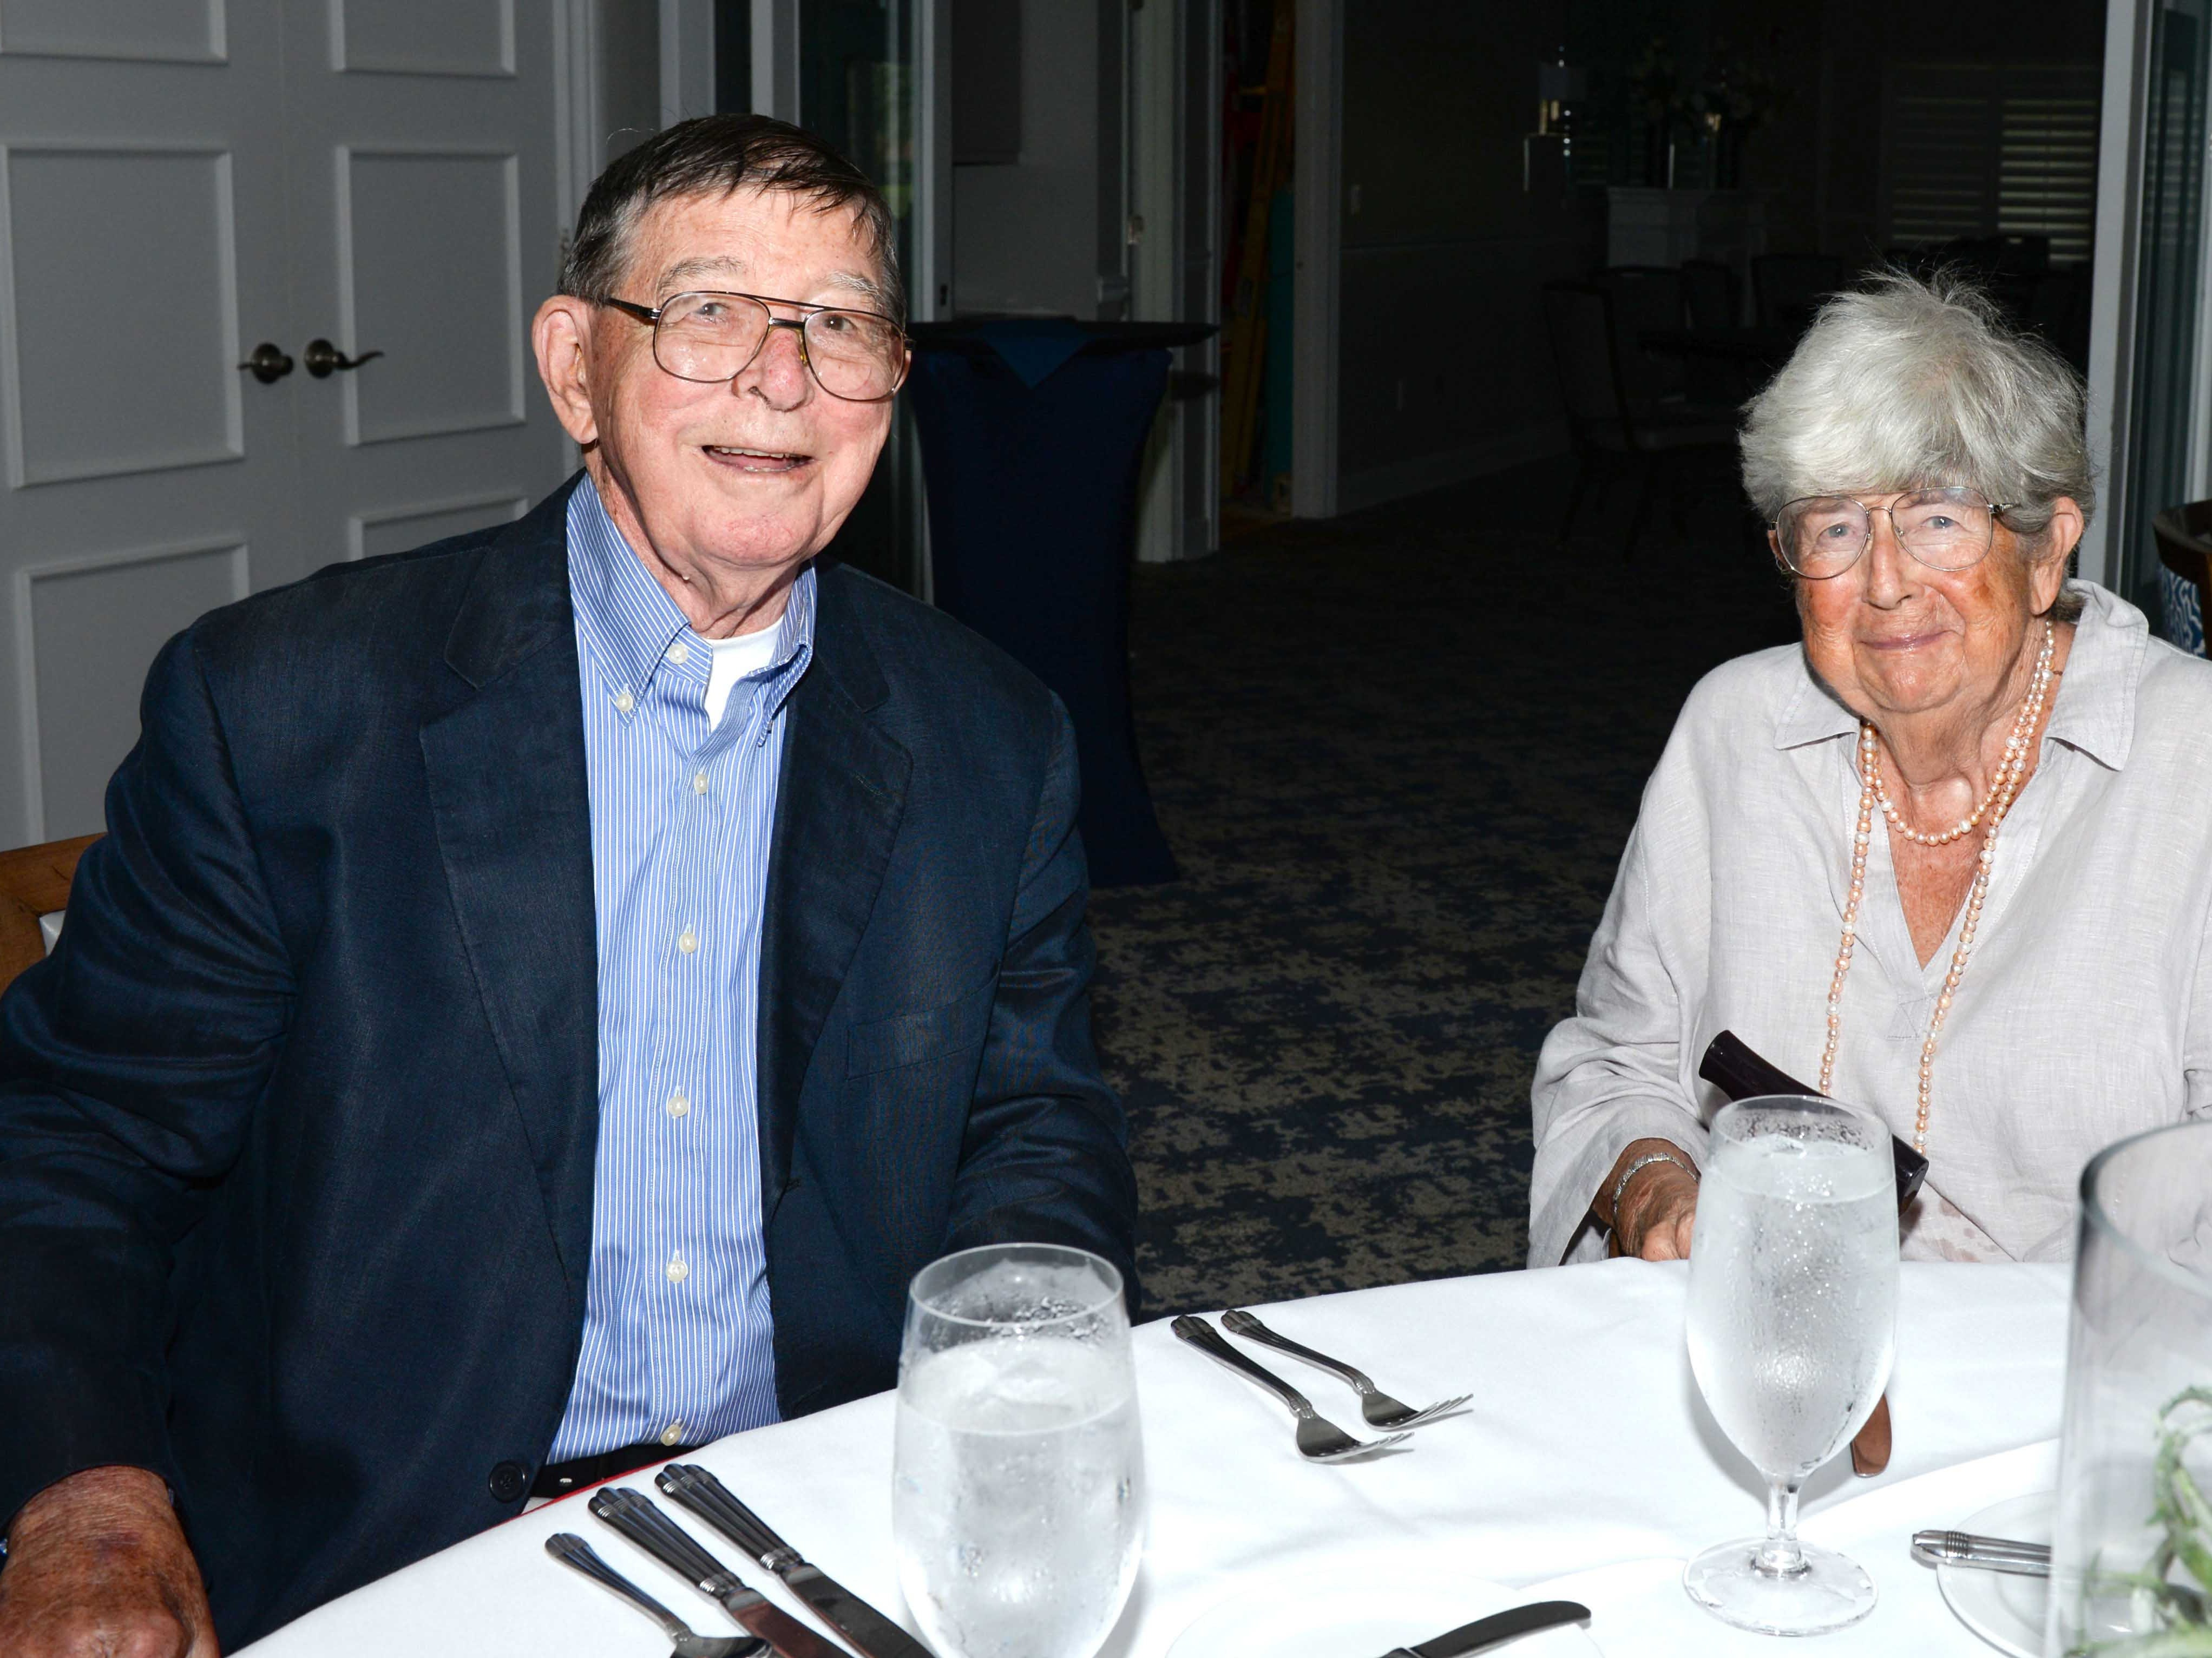 Jim and Julia Dempsey at the Stuart Friends of the Atlantic Classical Orchestra's Meet the Artist Dinner at the Stuart Yacht & Country Club.